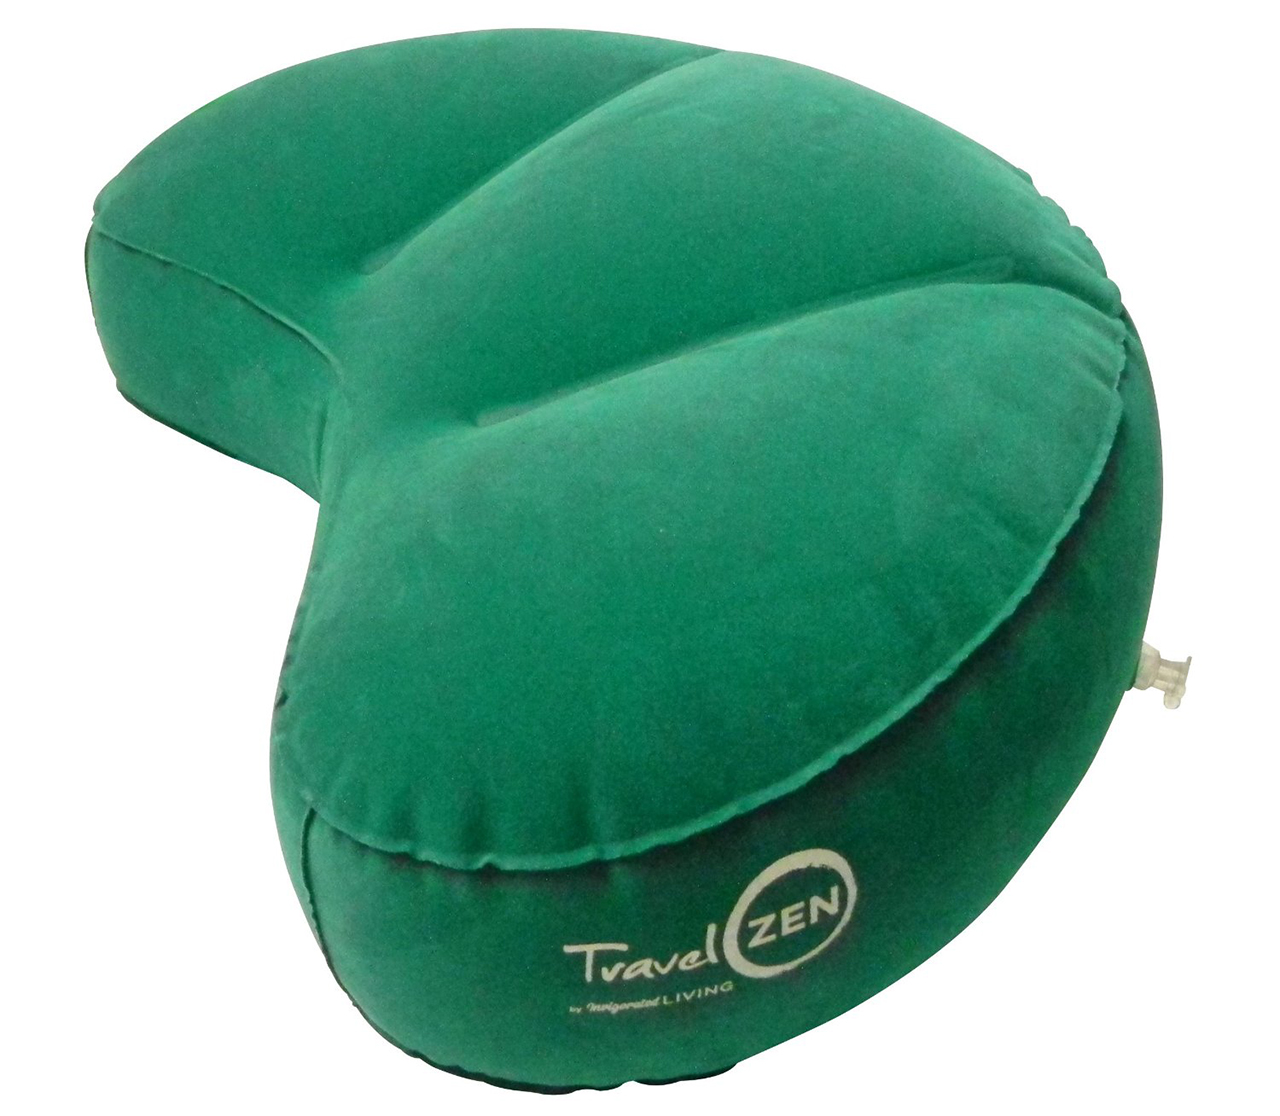 Best Ergonomic Travel Pillow